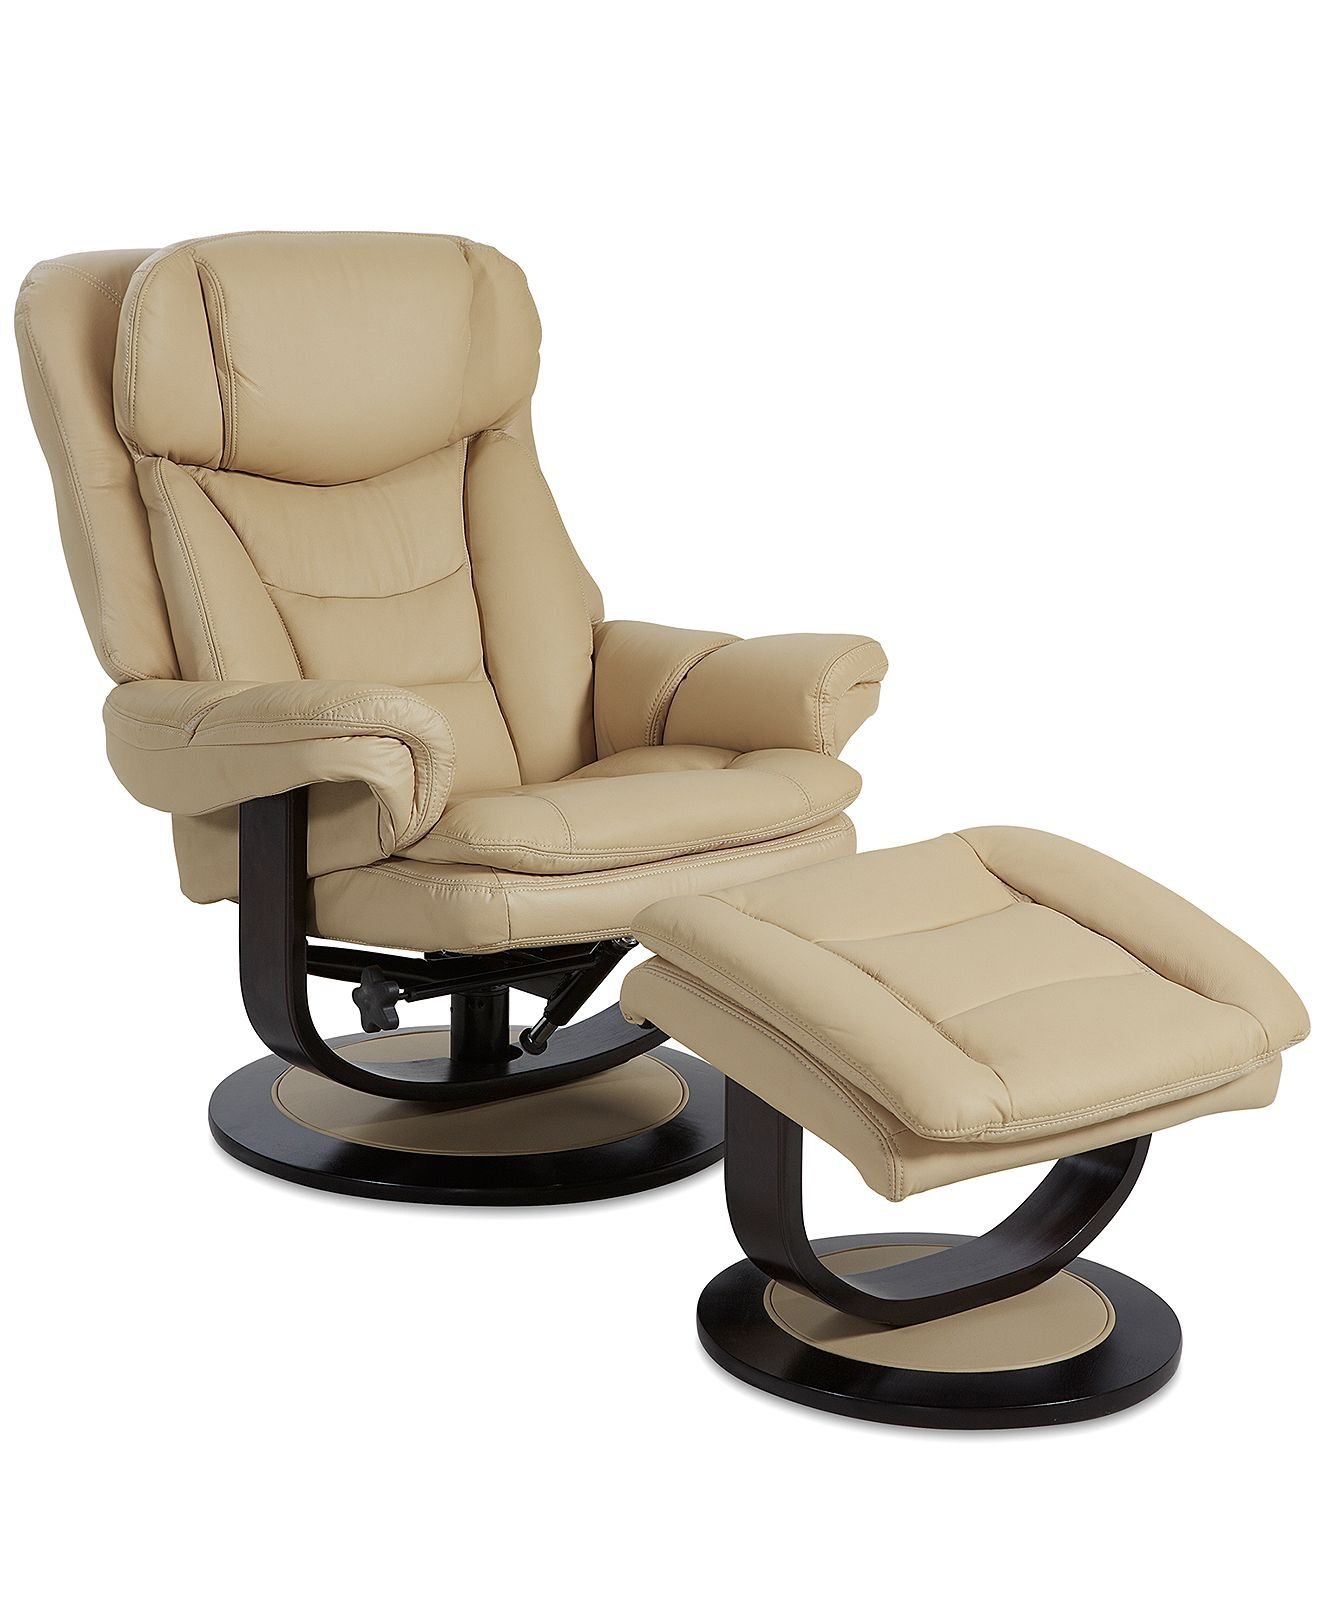 Groovy Ren Recliner Chair With Ottoman Recliners Furniture Gmtry Best Dining Table And Chair Ideas Images Gmtryco